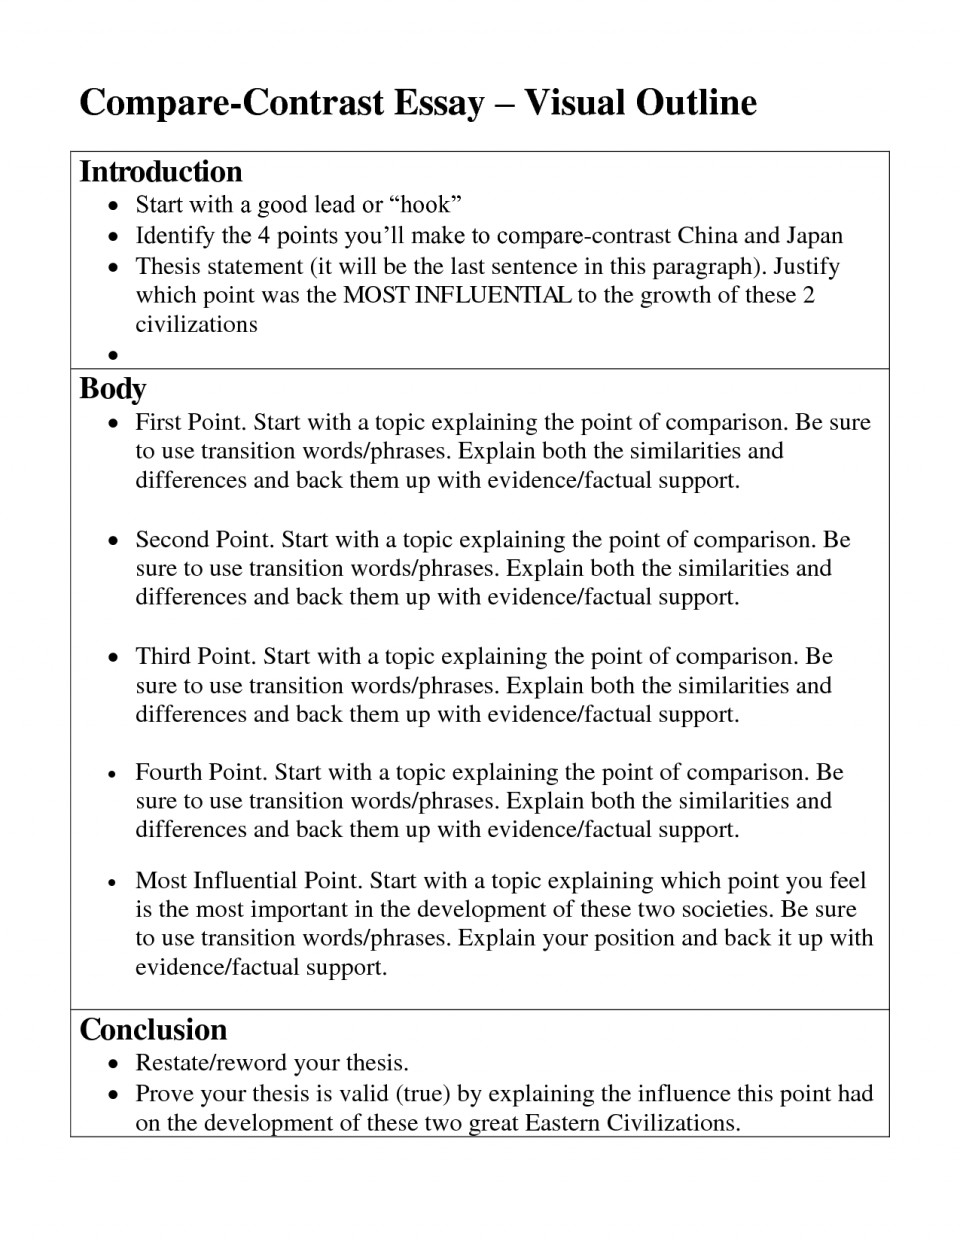 009 Good Compare And Contrast Essay Unbelievable Title Generator Examples High School Titles 960